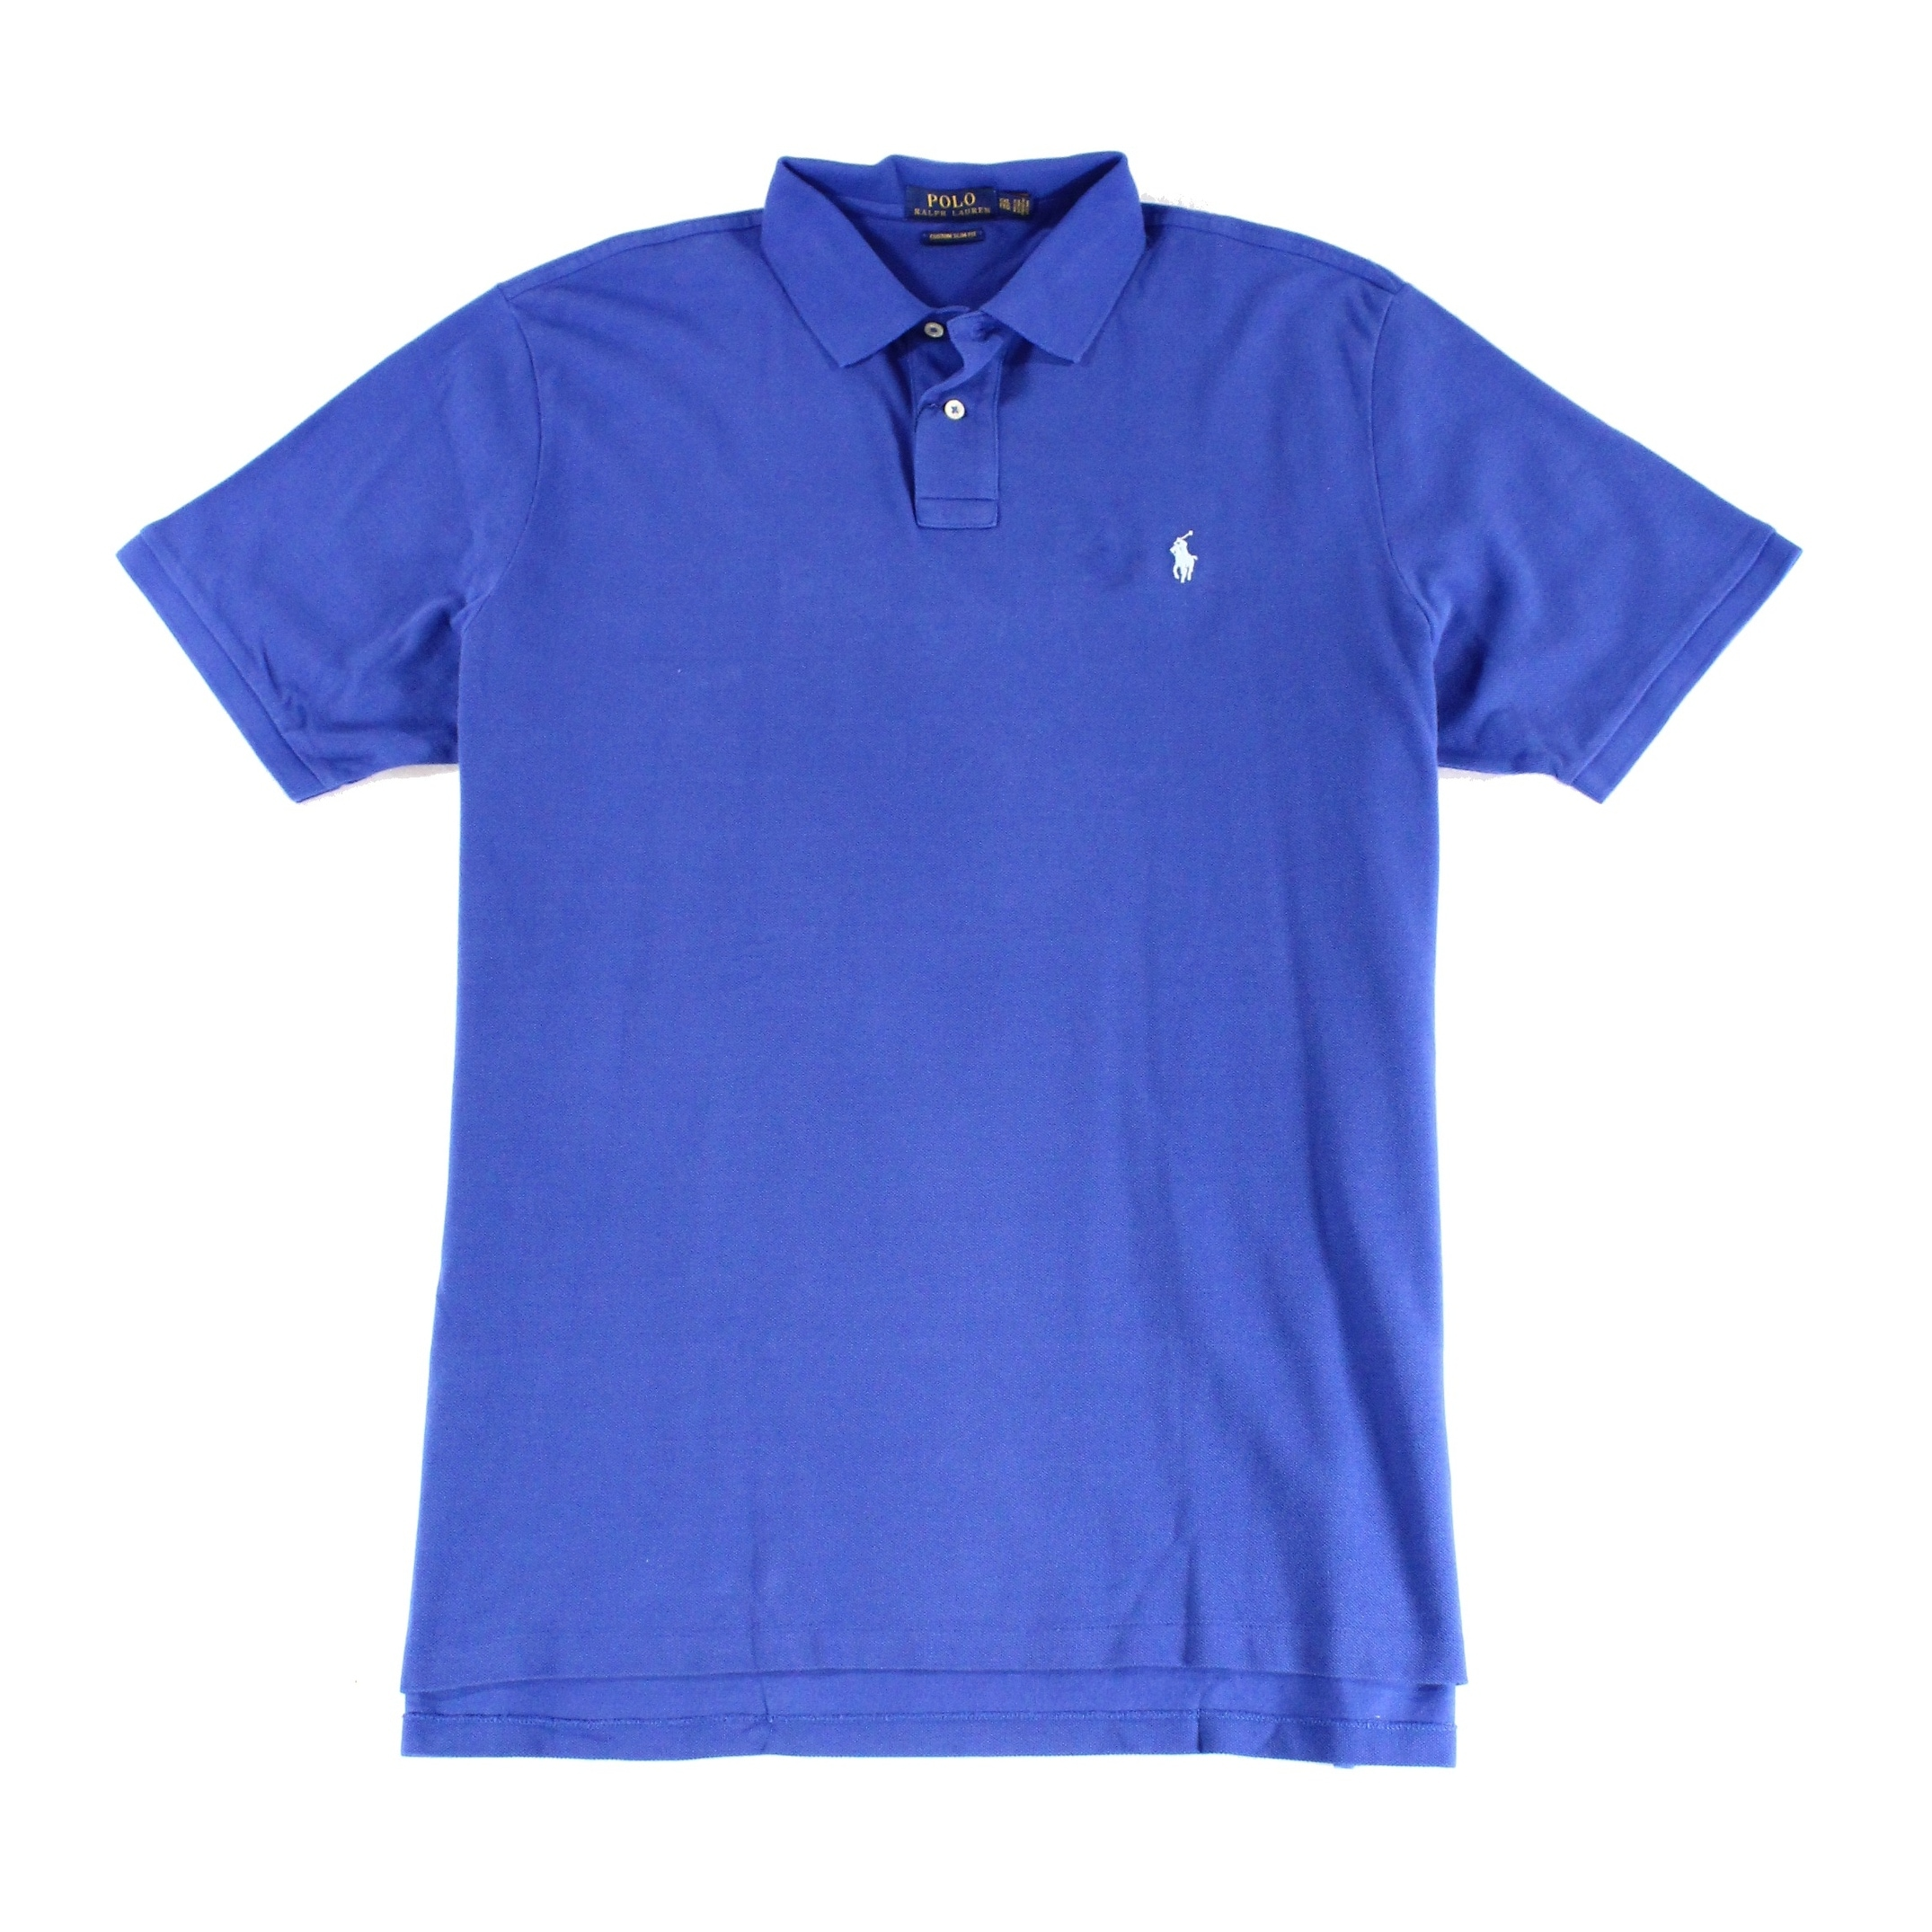 afa50a6e7 Polo Ralph Lauren Shirts | Find Great Men's Clothing Deals Shopping at  Overstock